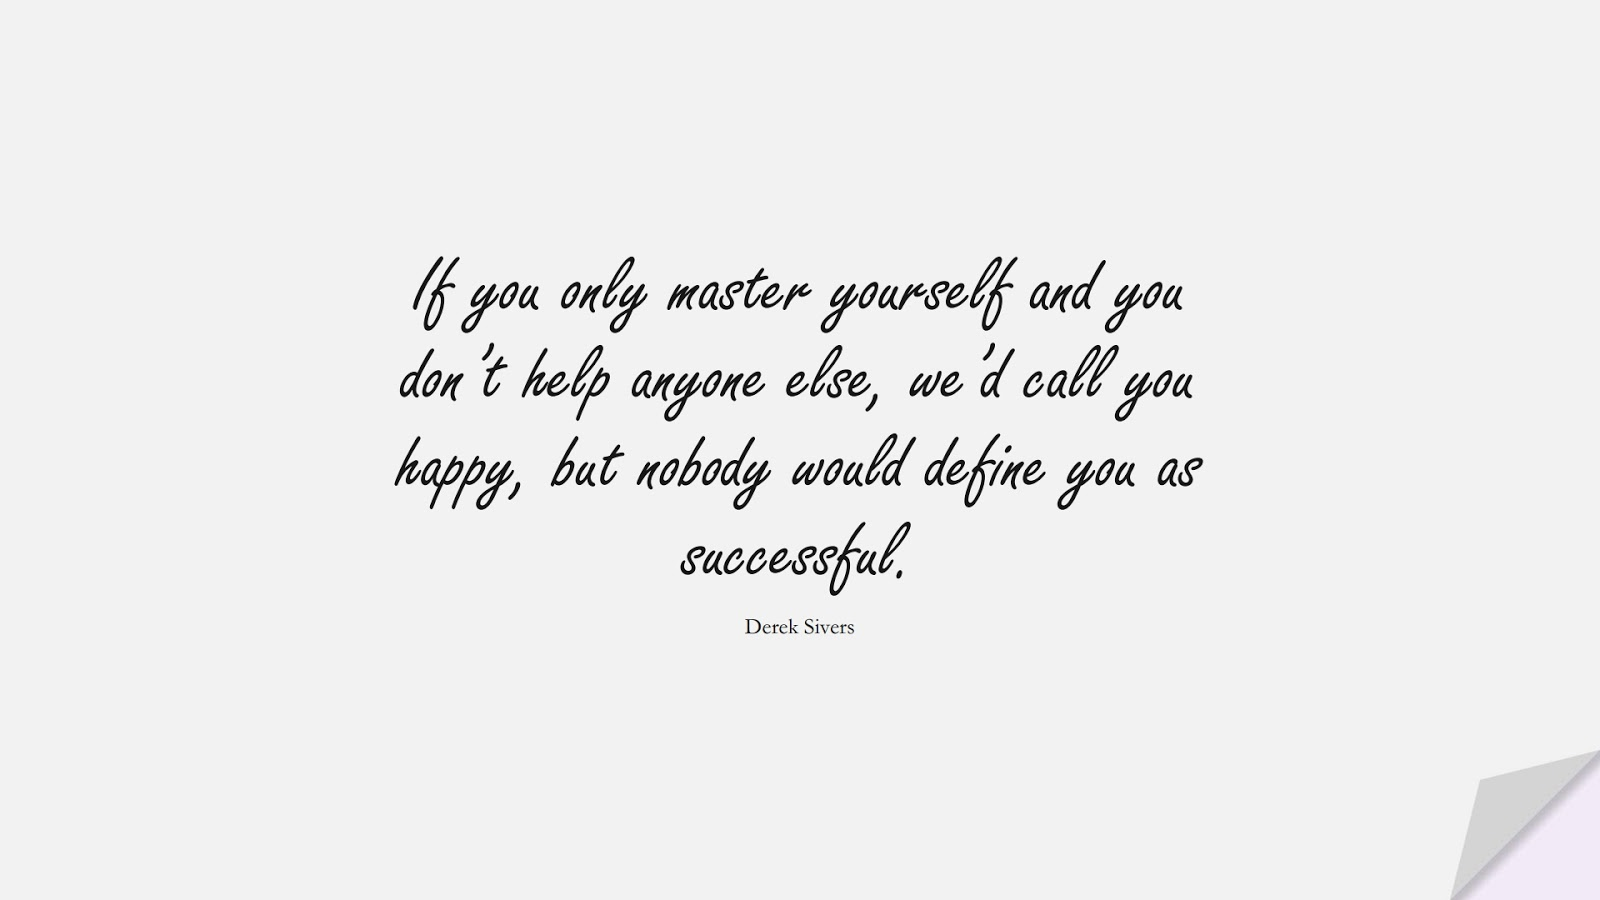 If you only master yourself and you don't help anyone else, we'd call you happy, but nobody would define you as successful. (Derek Sivers);  #SuccessQuotes